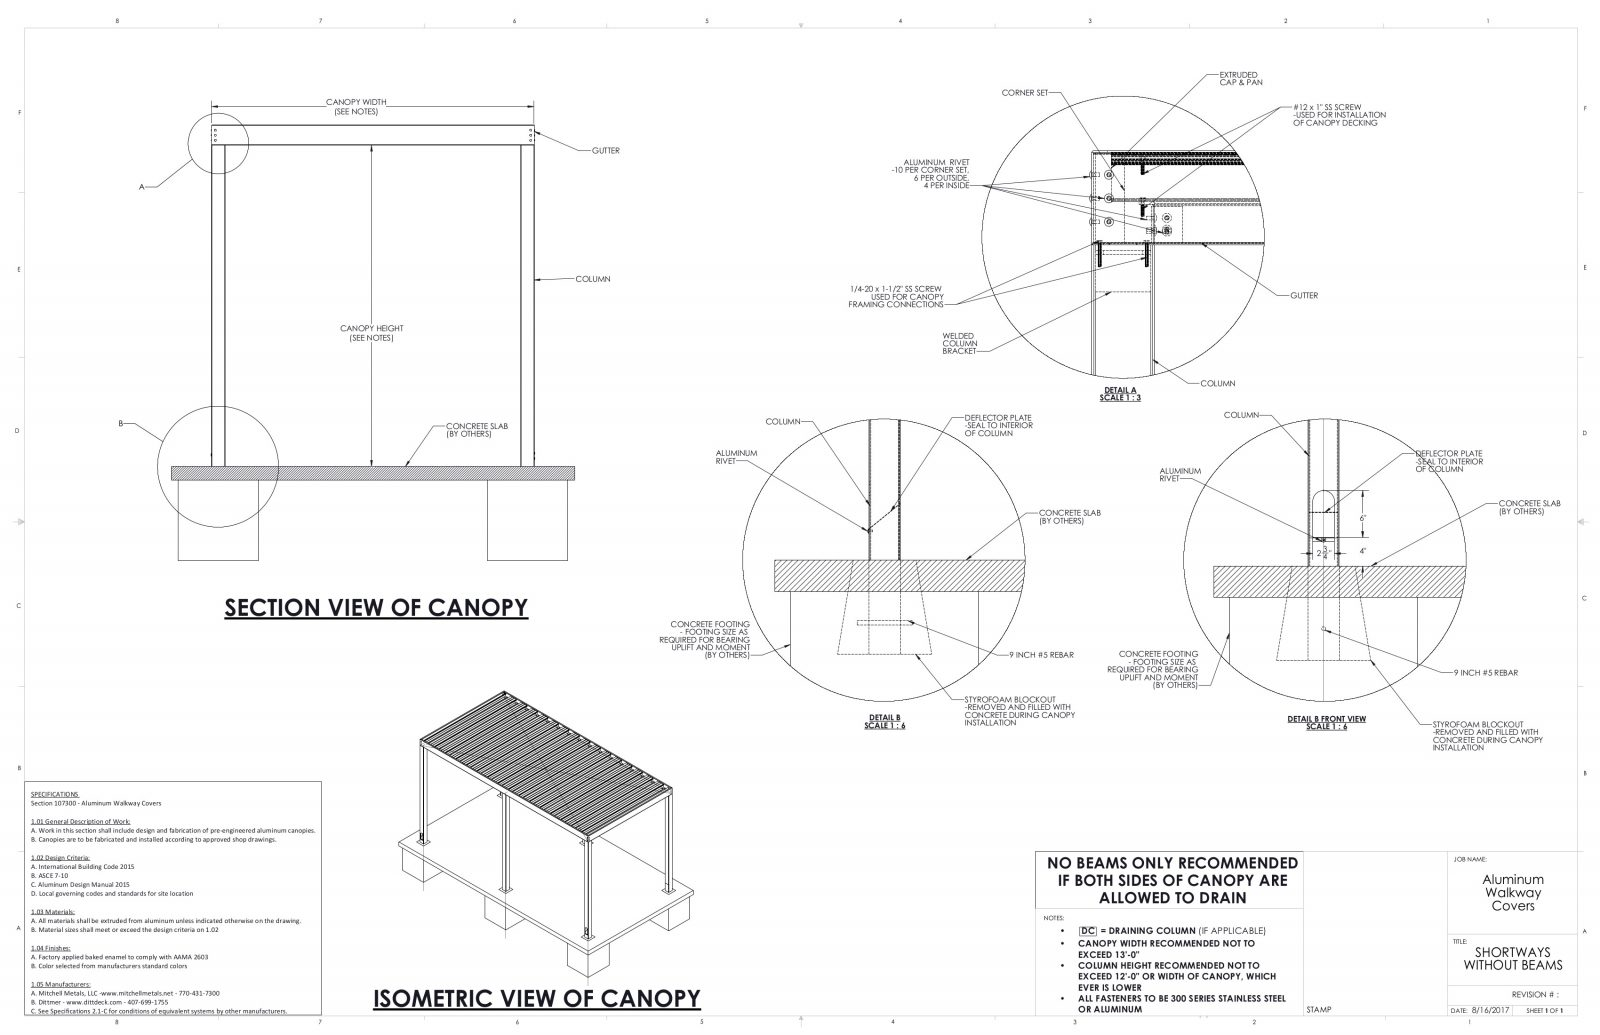 details of walkway canopy for architects and GCs